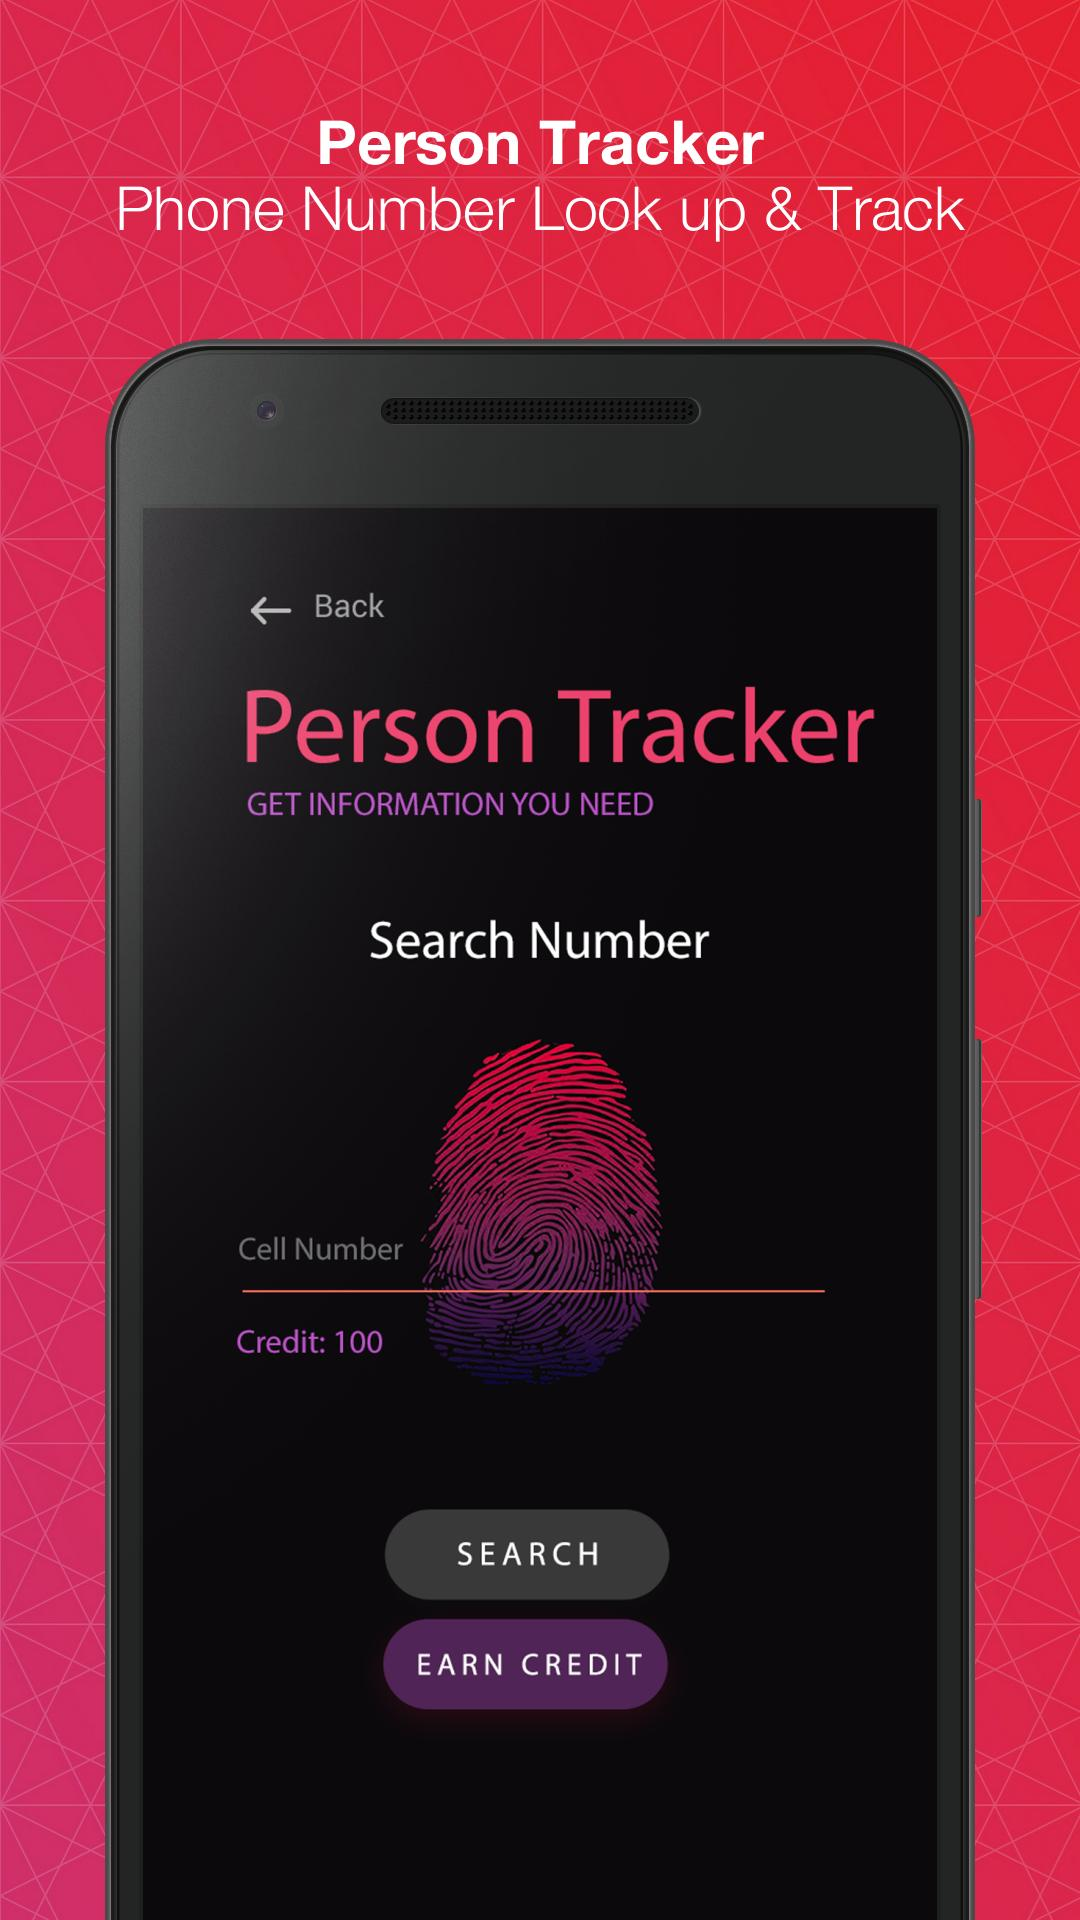 Person Tracker by Mobile Phone Number in Pakistan for